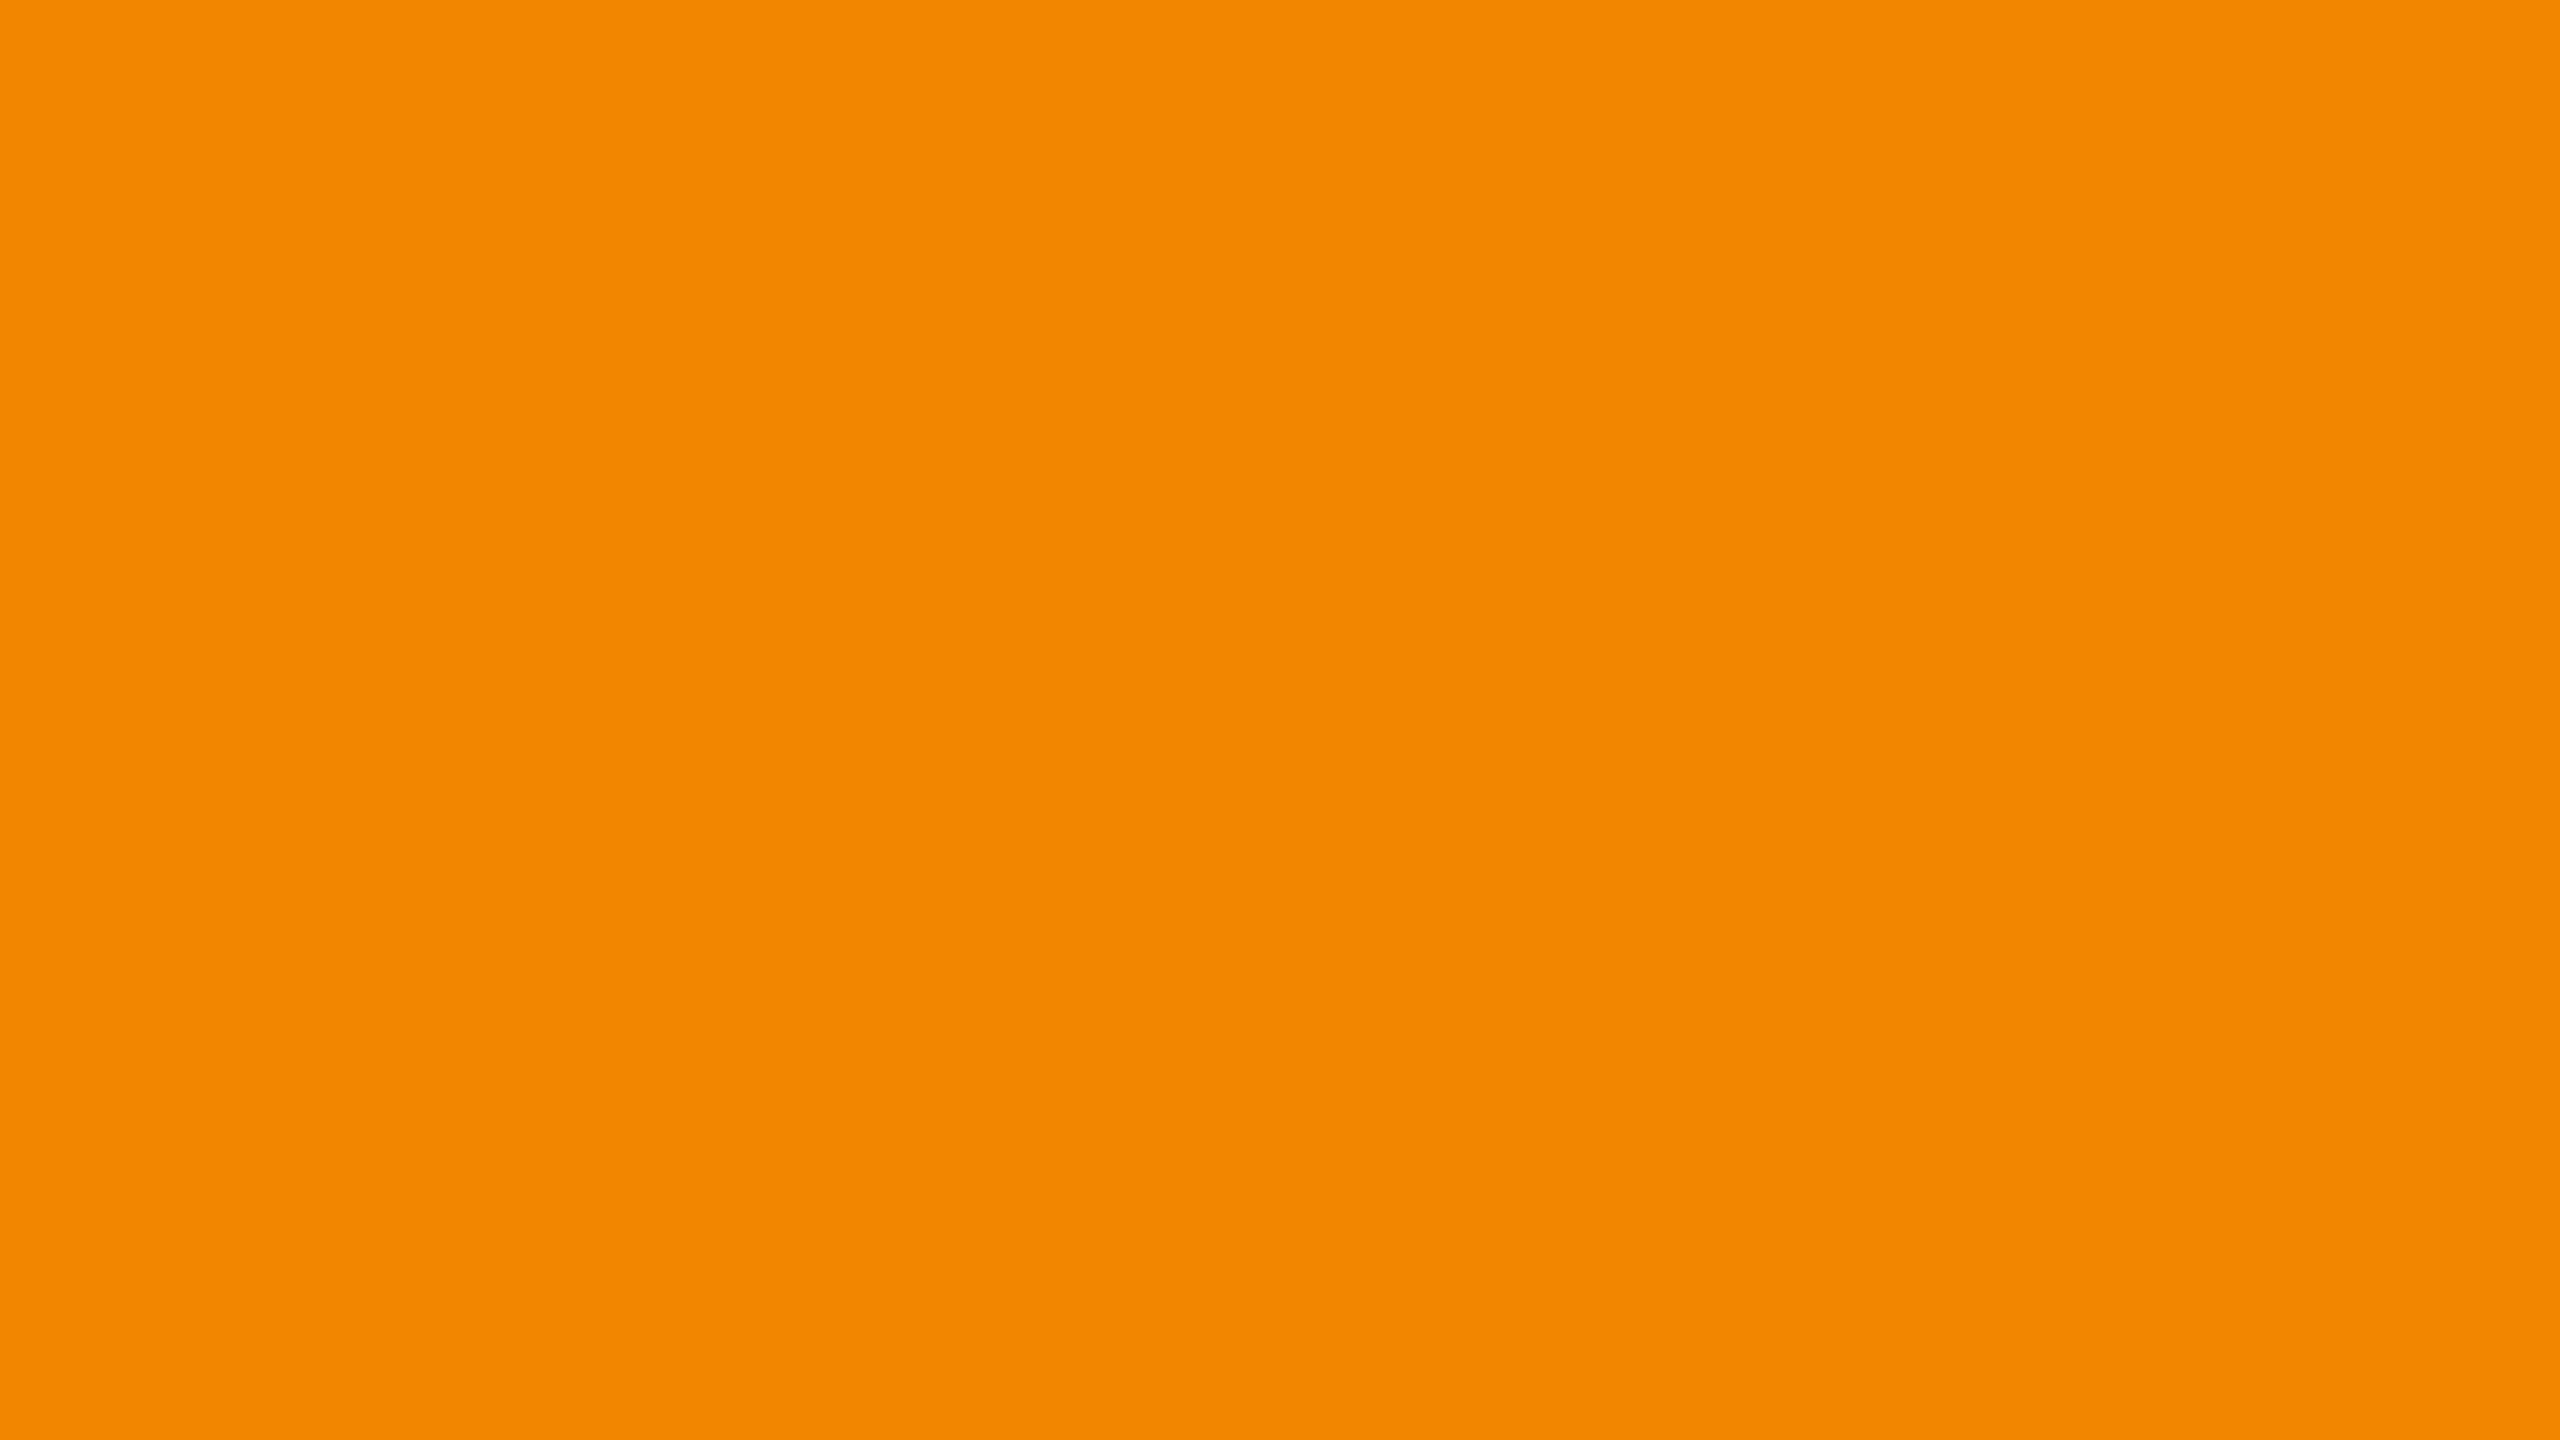 2560x1440 Tangerine Solid Color Background